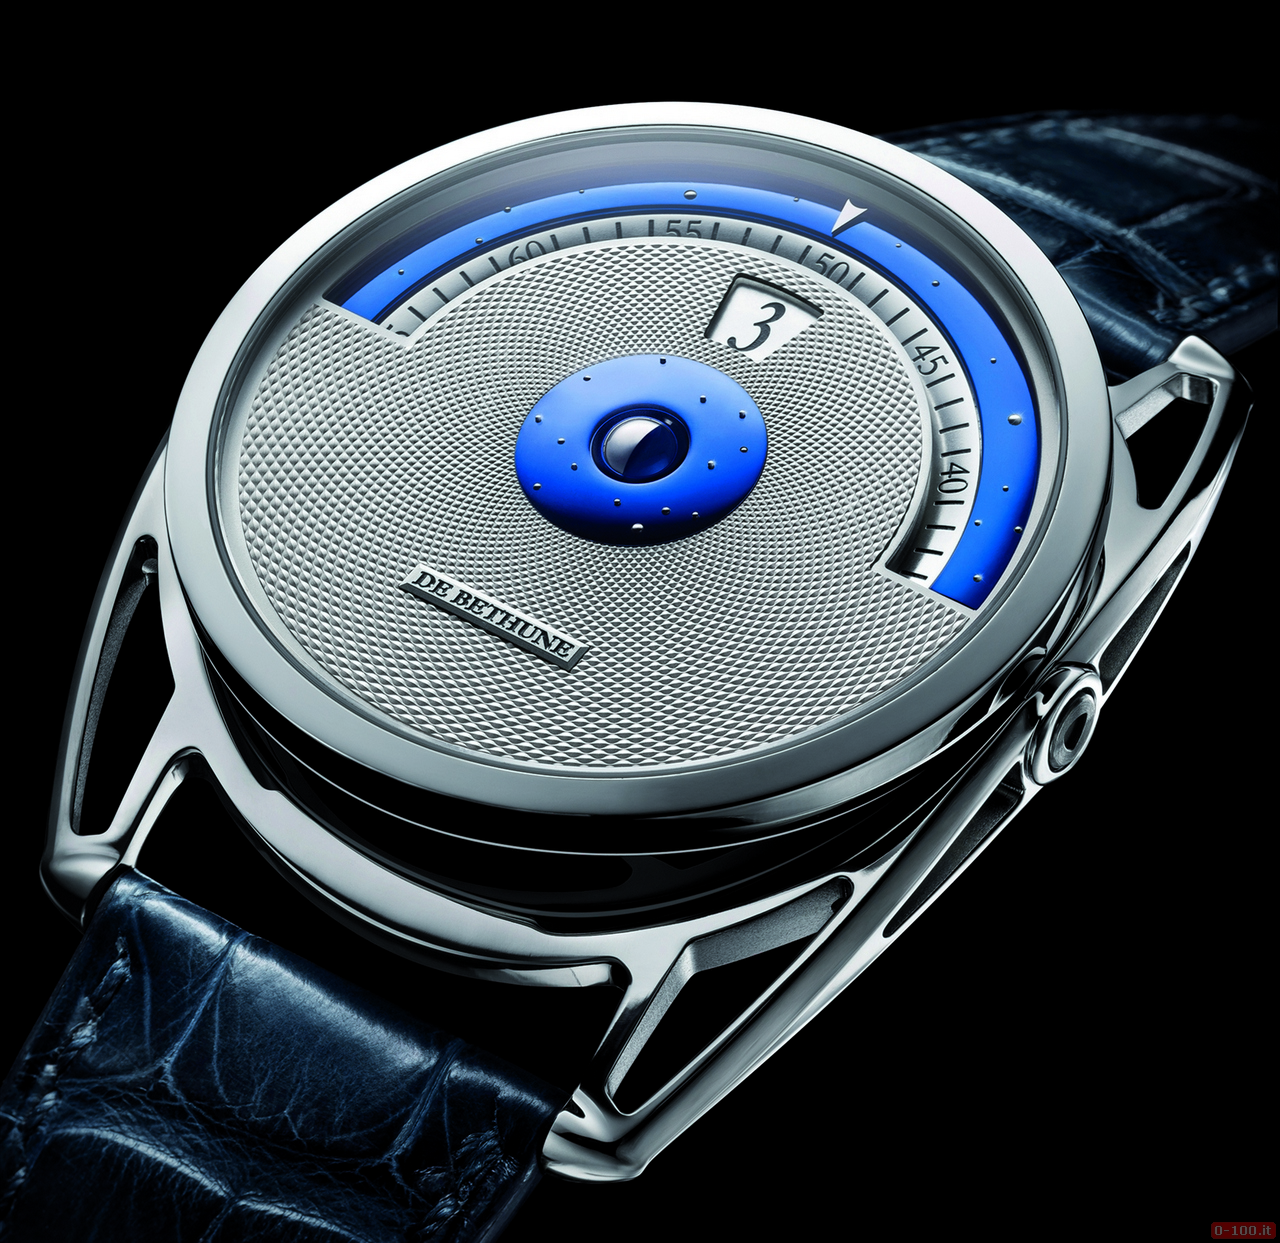 anteprima baselworld 2014 de bethune db28 digitale 0. Black Bedroom Furniture Sets. Home Design Ideas